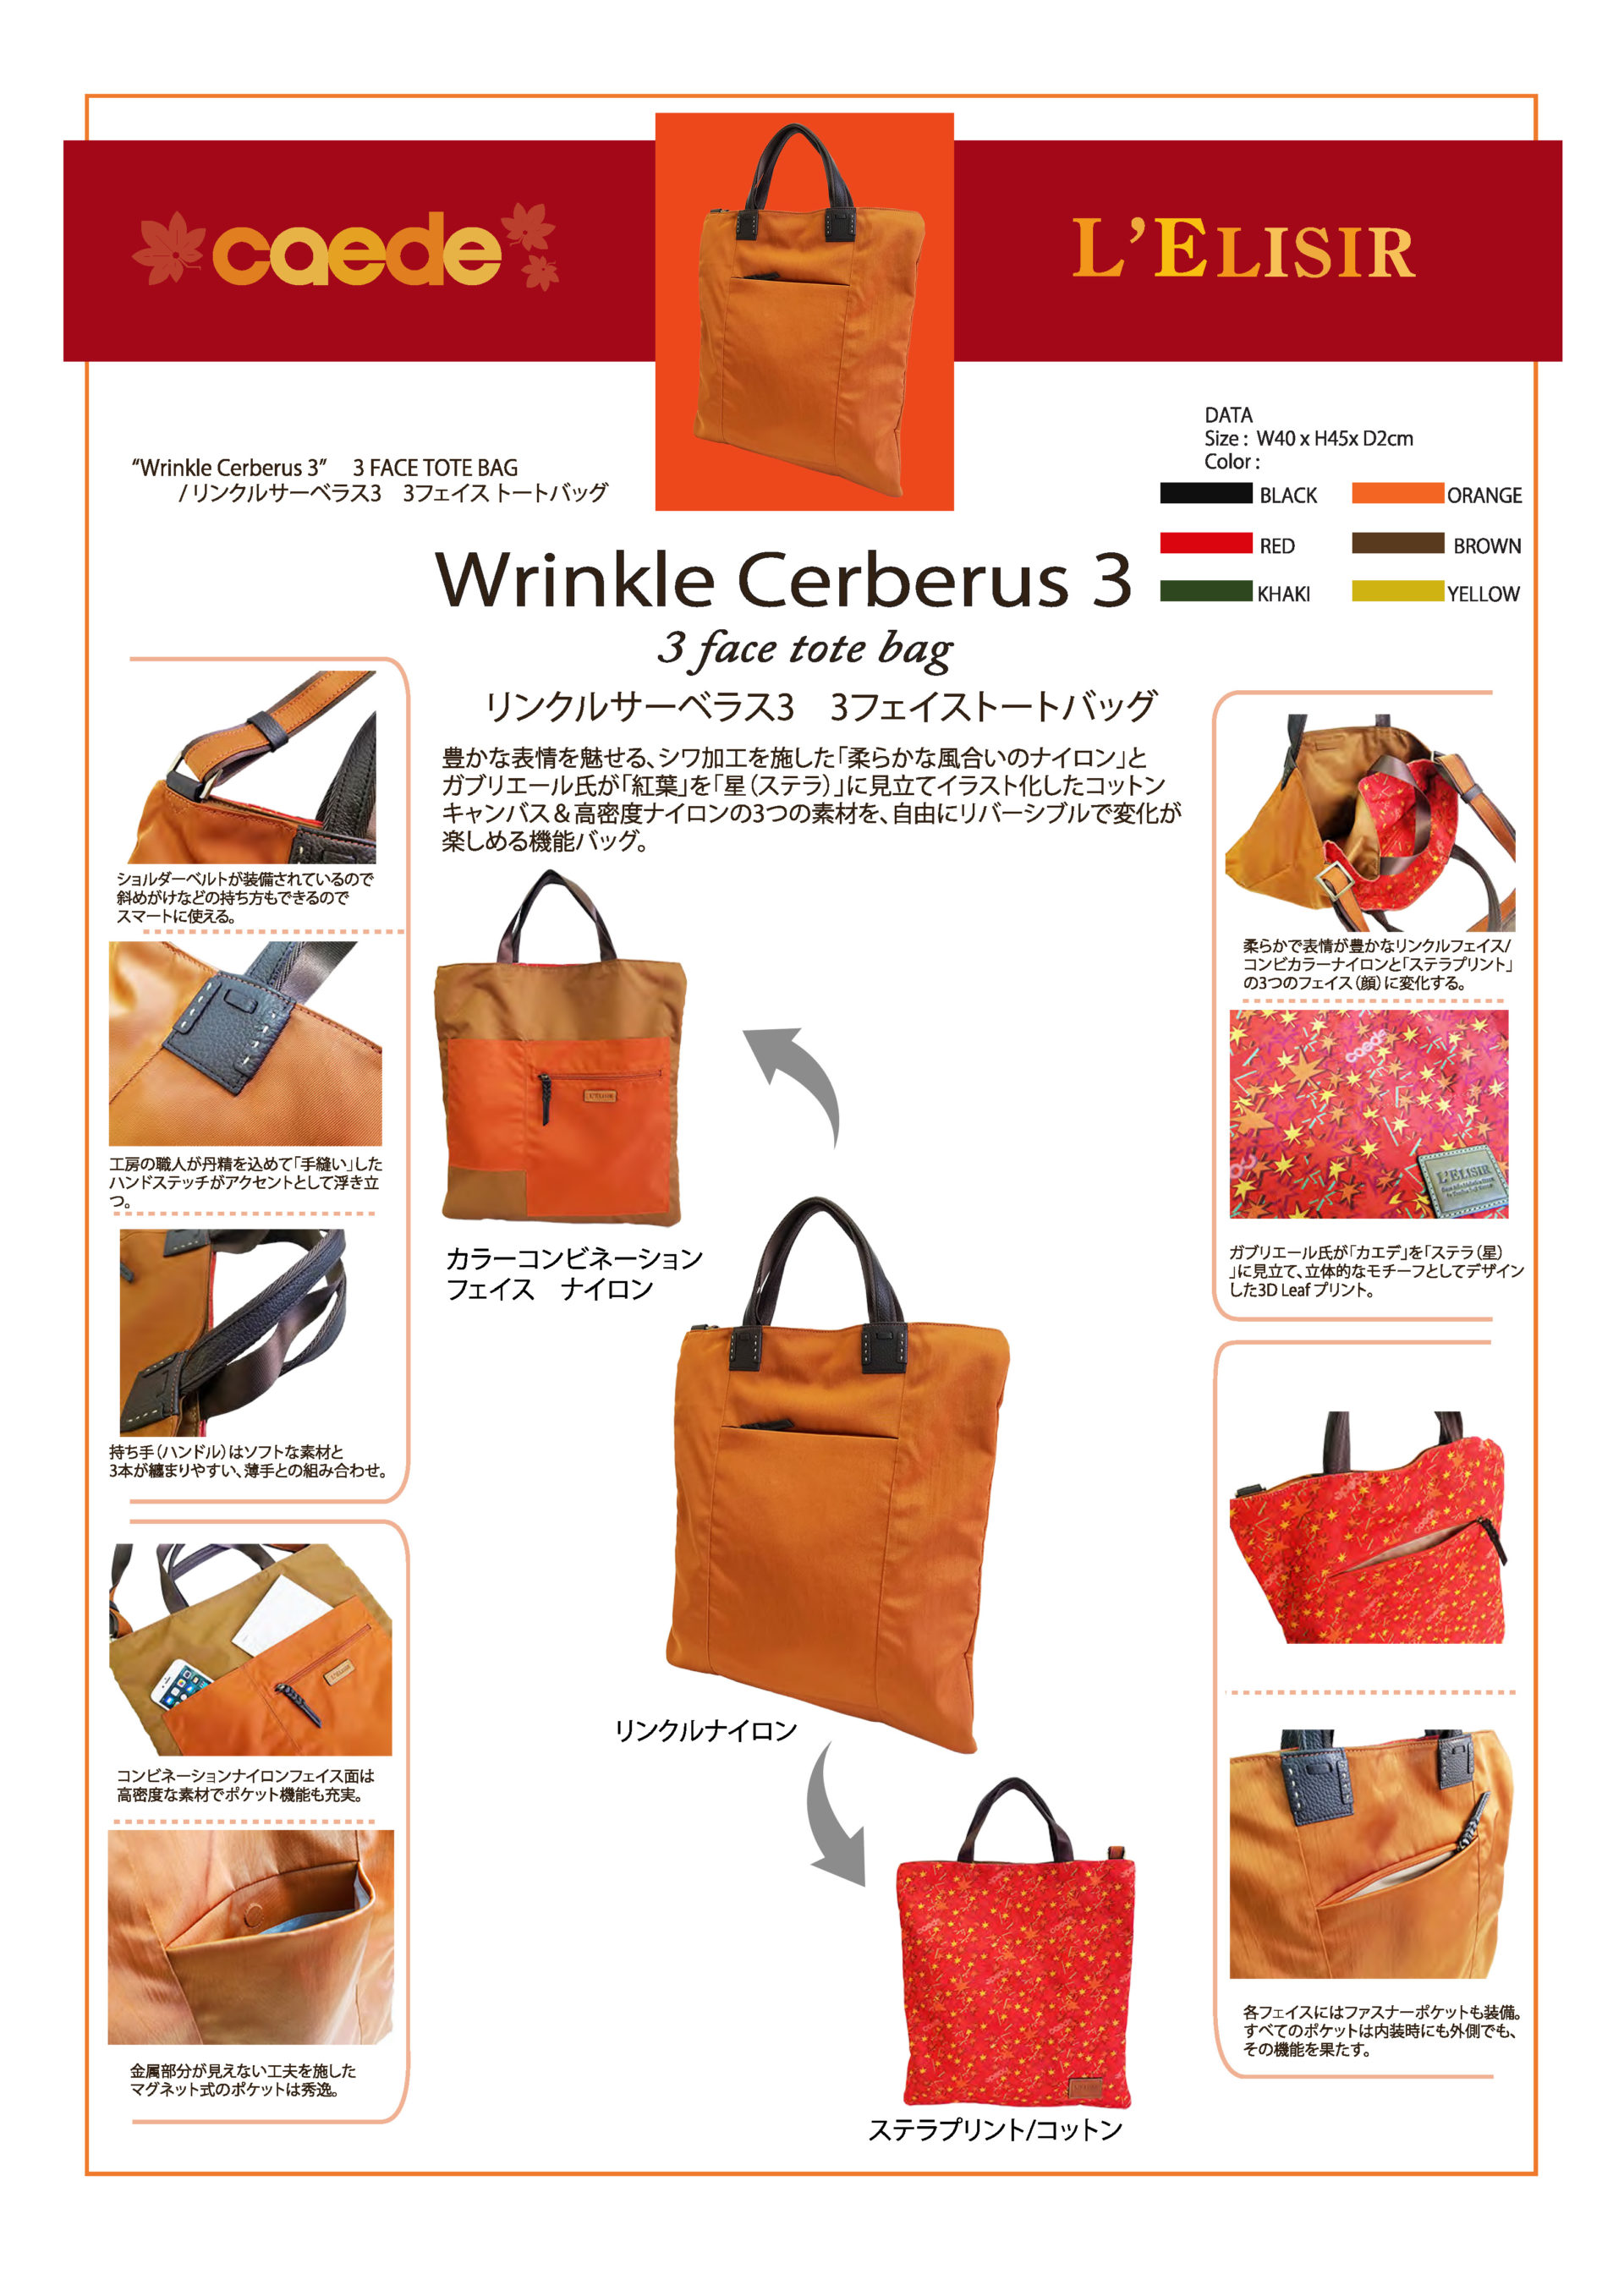 72921-wrinkle nylon 3face tote